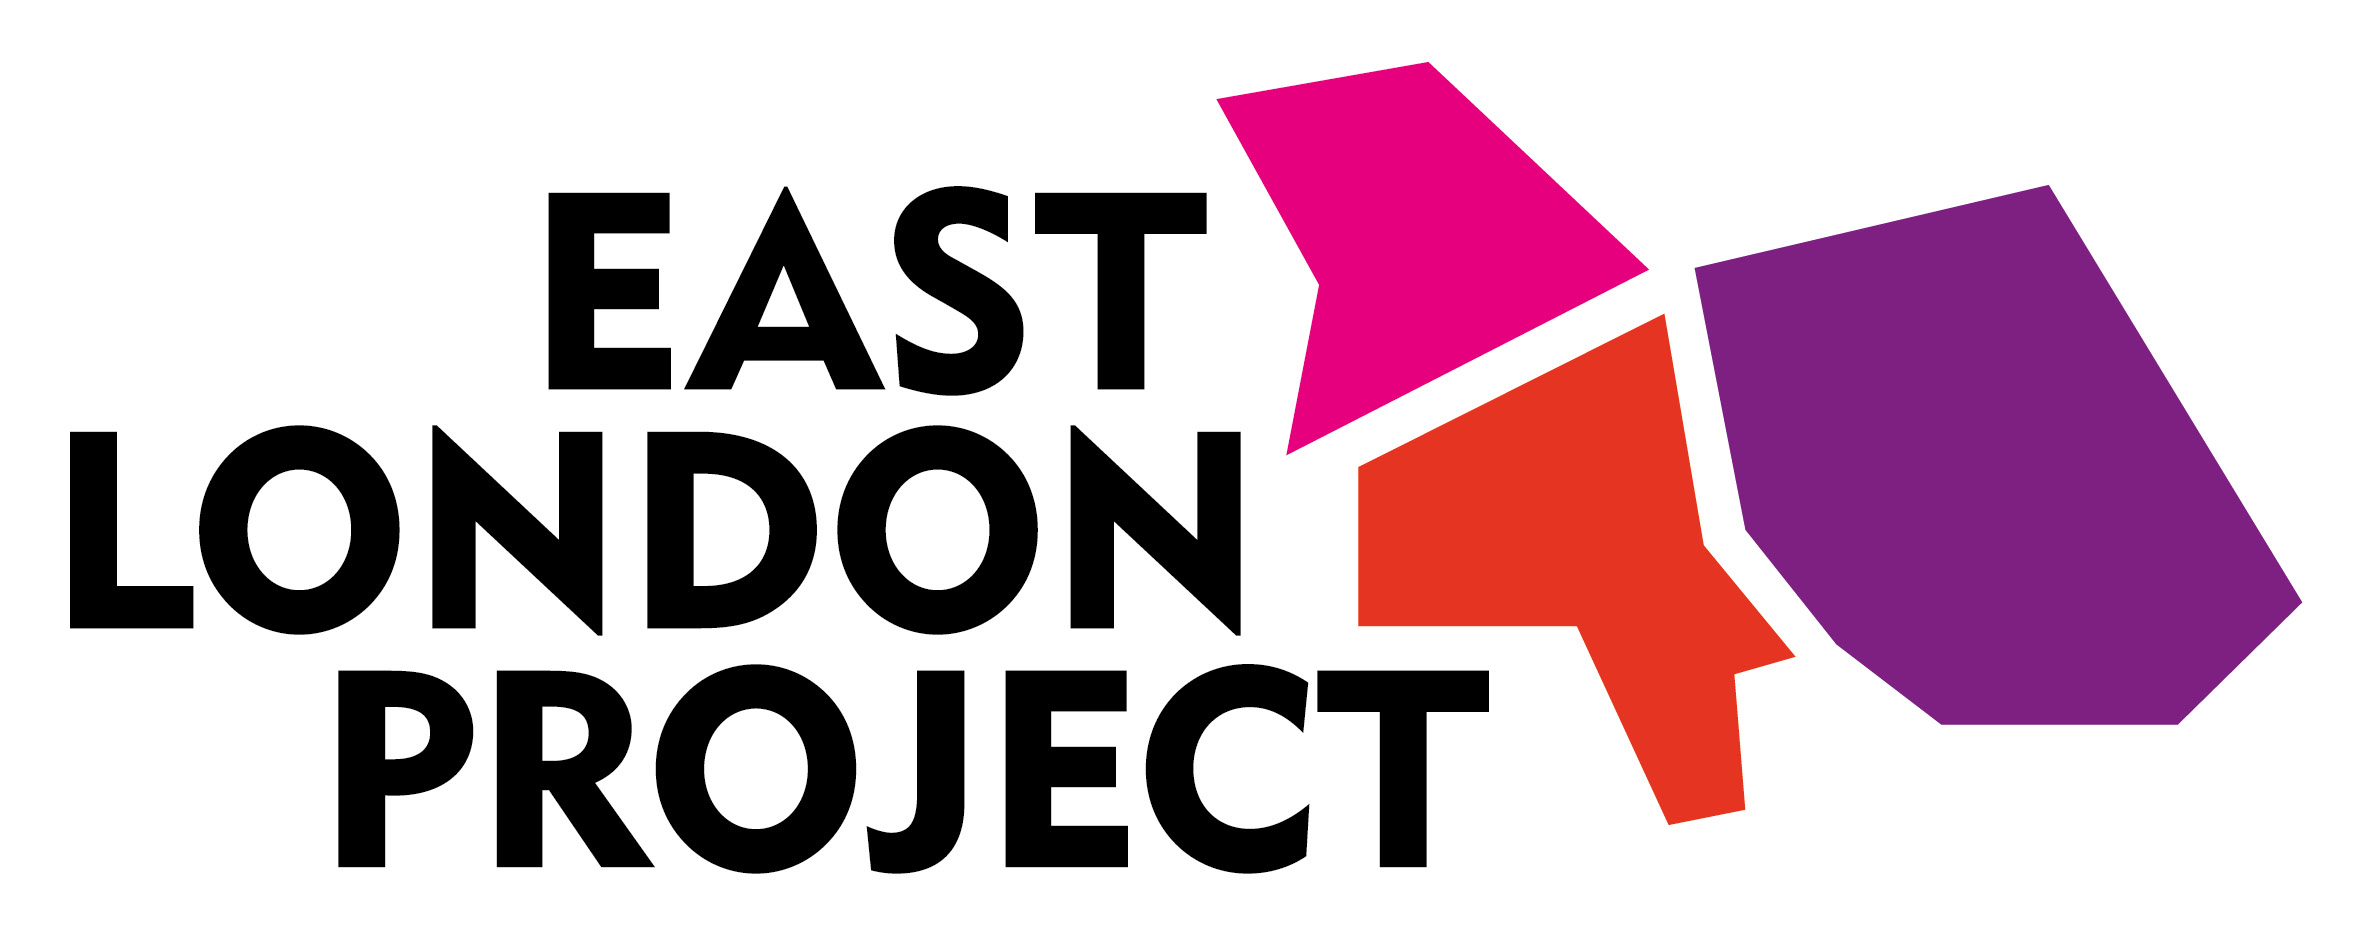 The East London Project